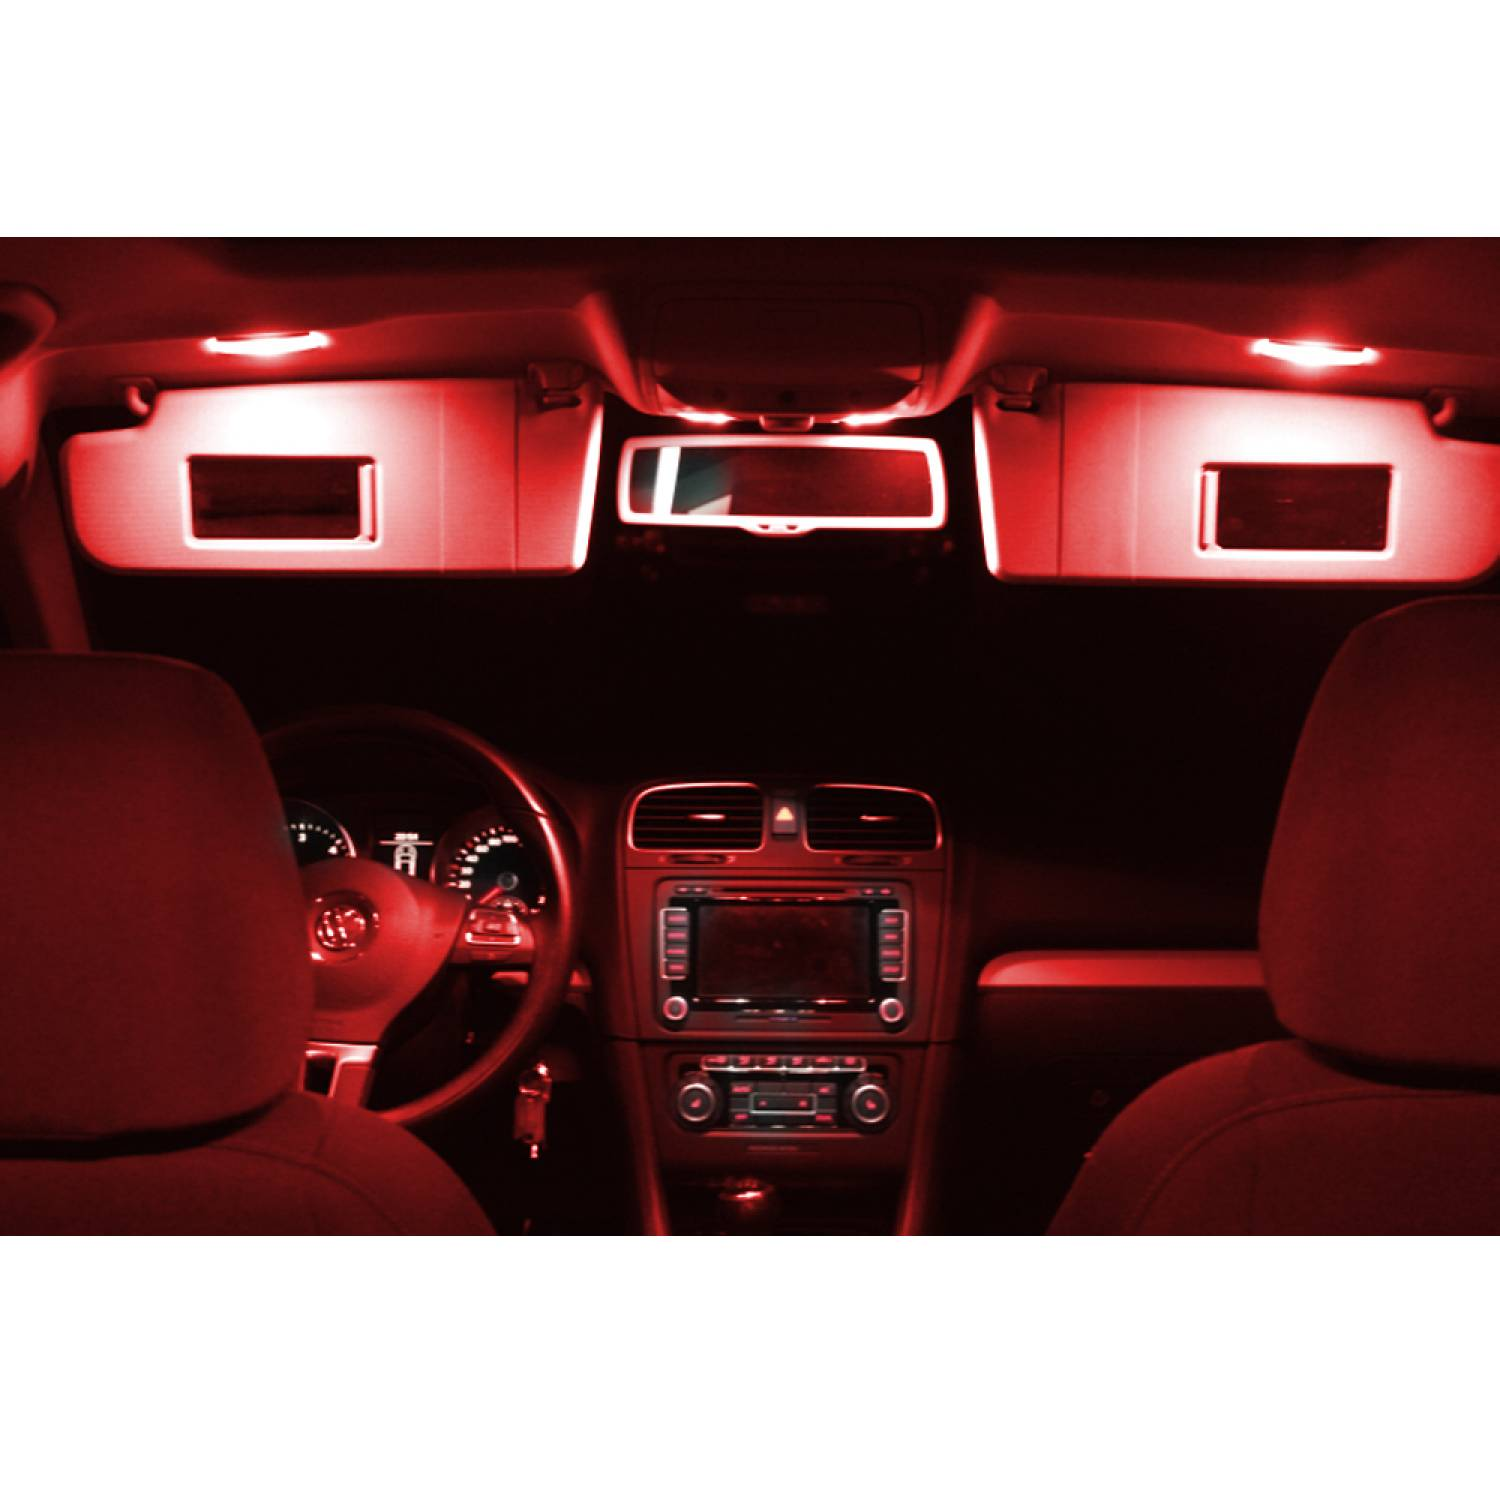 Alfa-Romeo-Spider-939-LED-Innenraumbeleuchtung-Set-Can-Bus-Lampe-5730-SMD